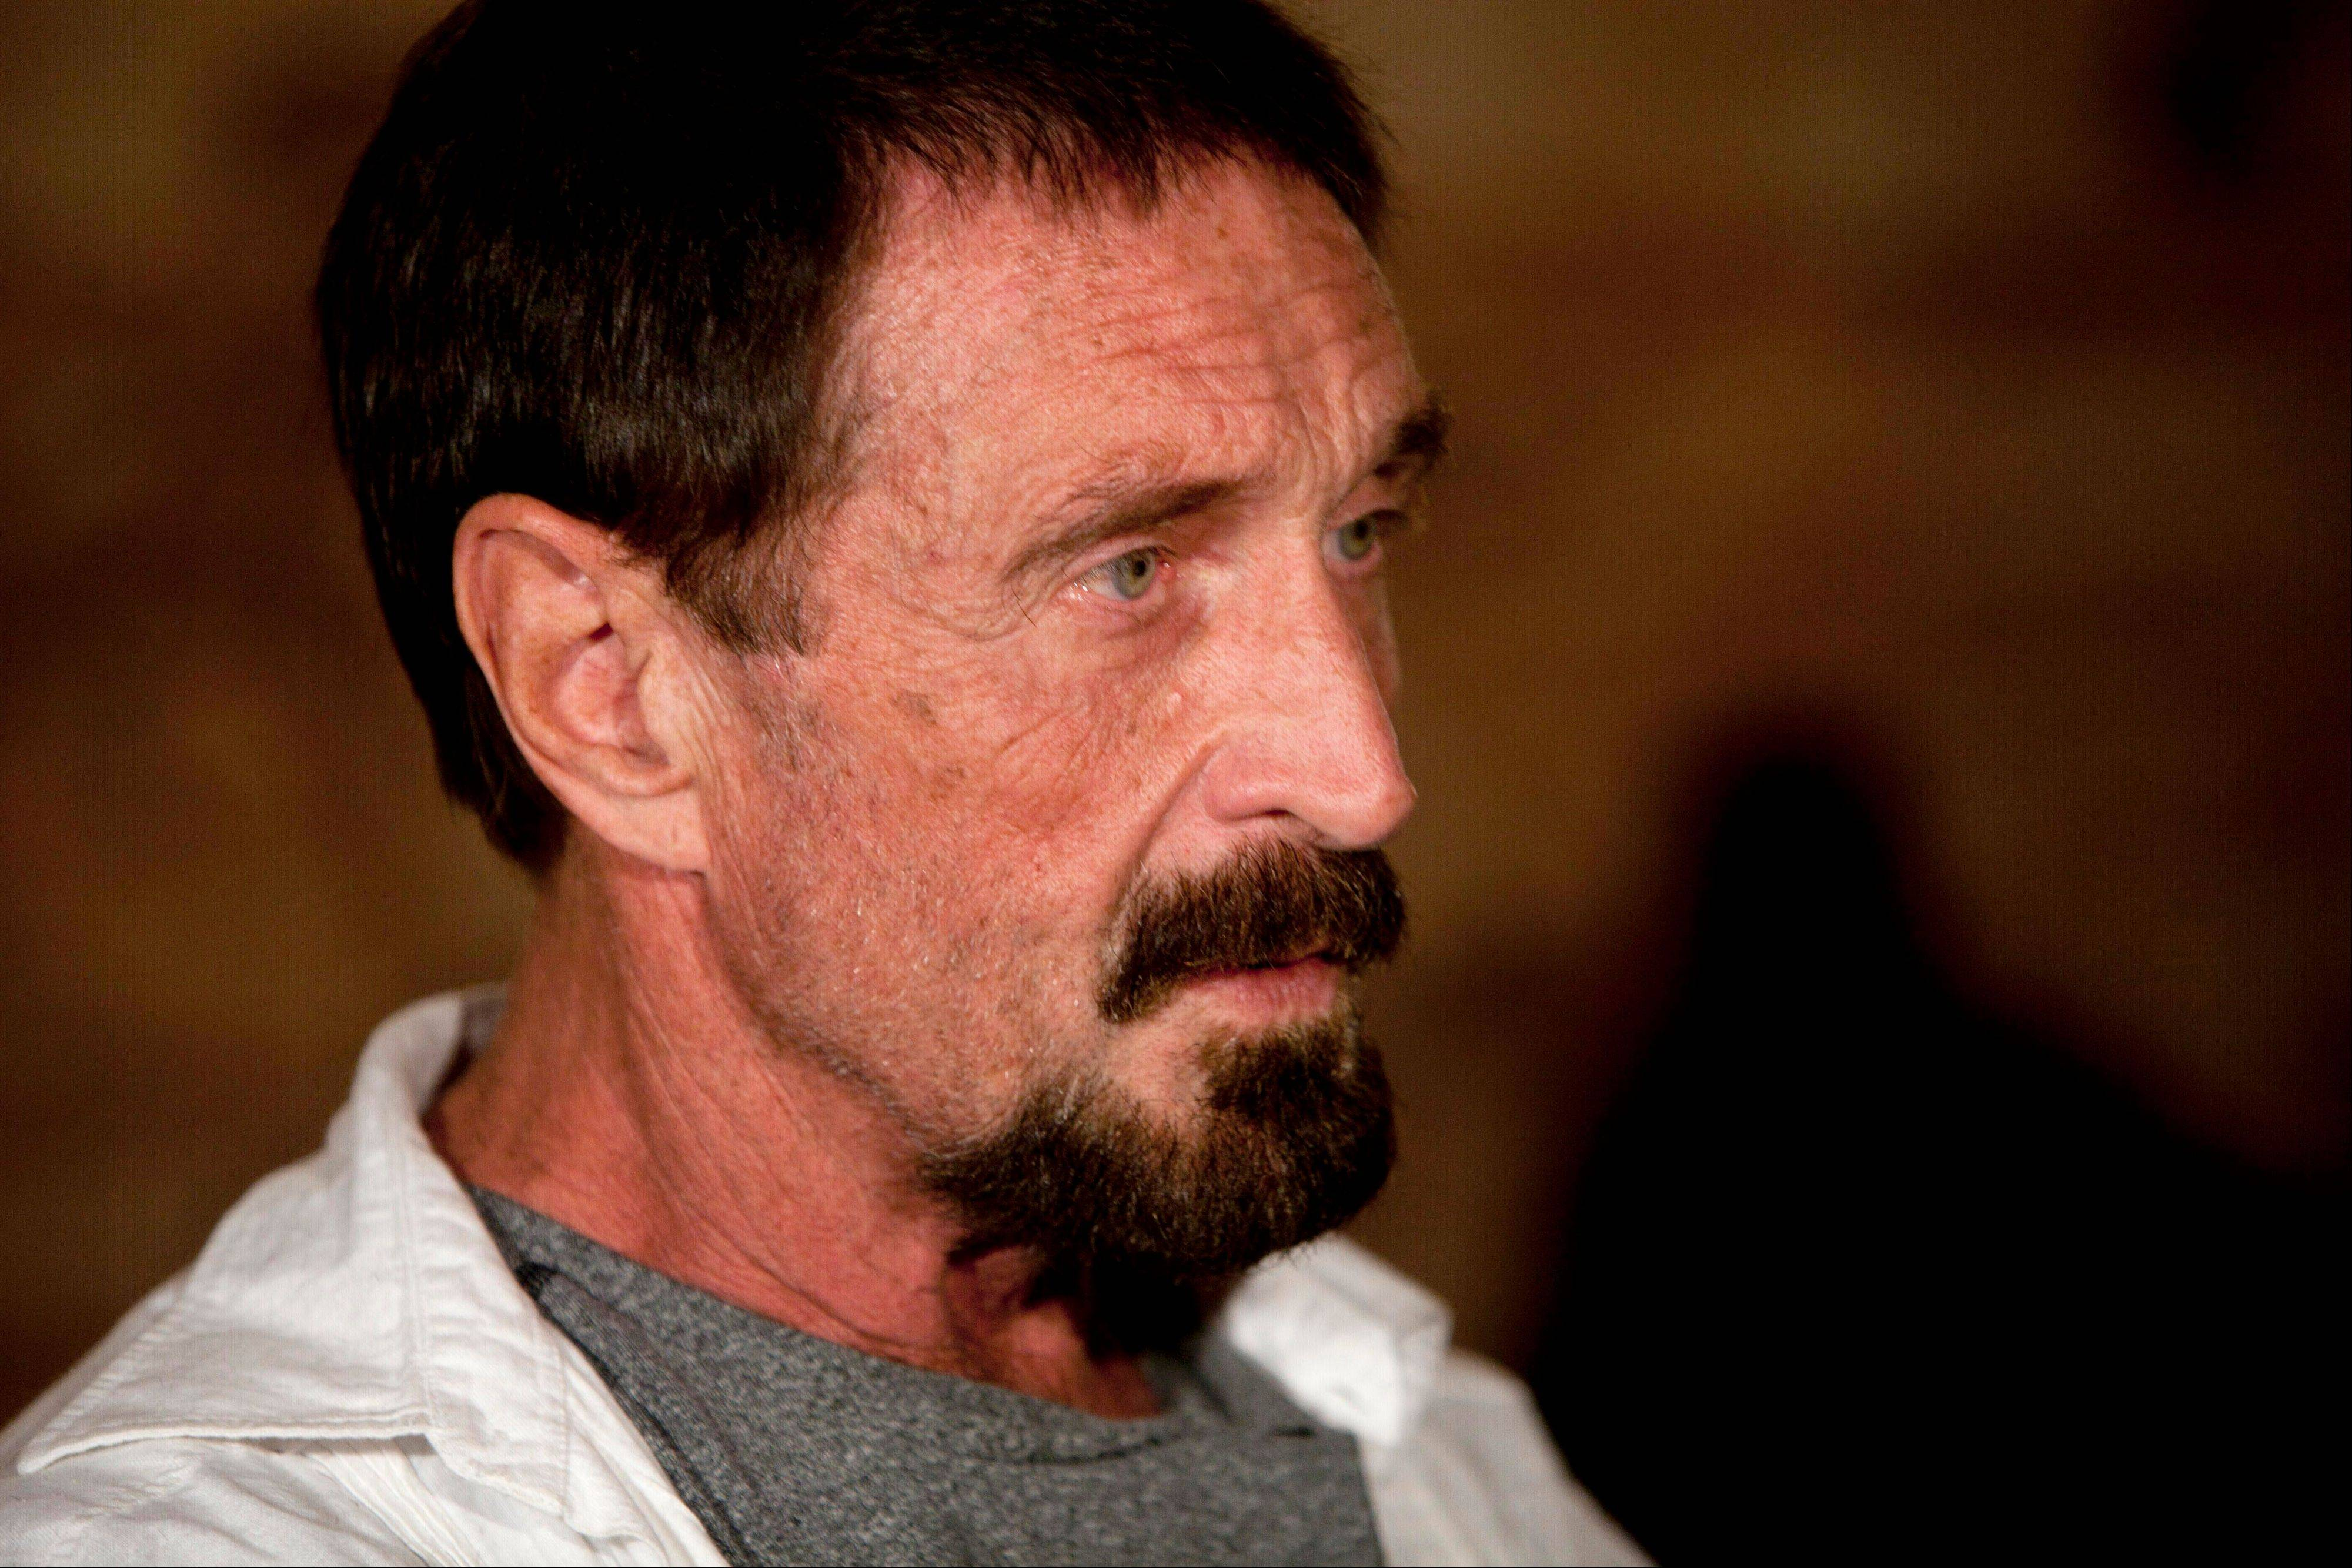 Software company founder John McAfee apparently is returning to the United States after having been detained in Guatemala since he sneaked there from neighboring Belize, where he was sought for questioning regarding the death of his neighbor.